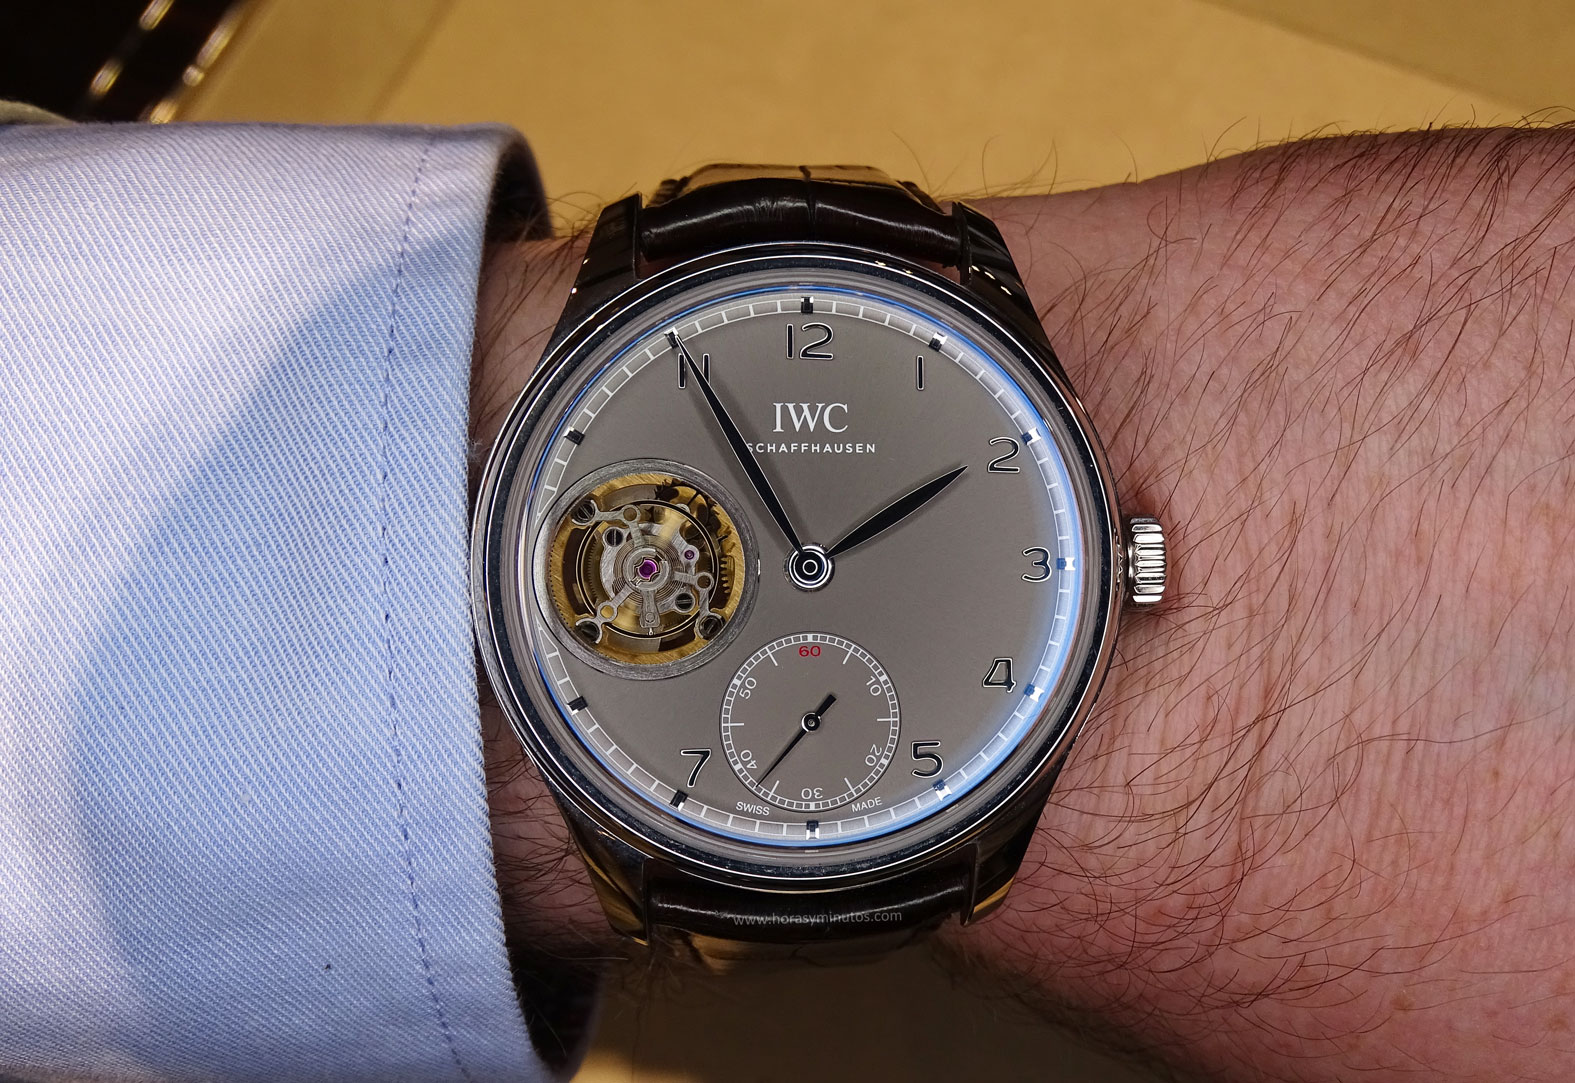 IWC Portugues Tourbillon Manual pizarra en la muñeca frontal